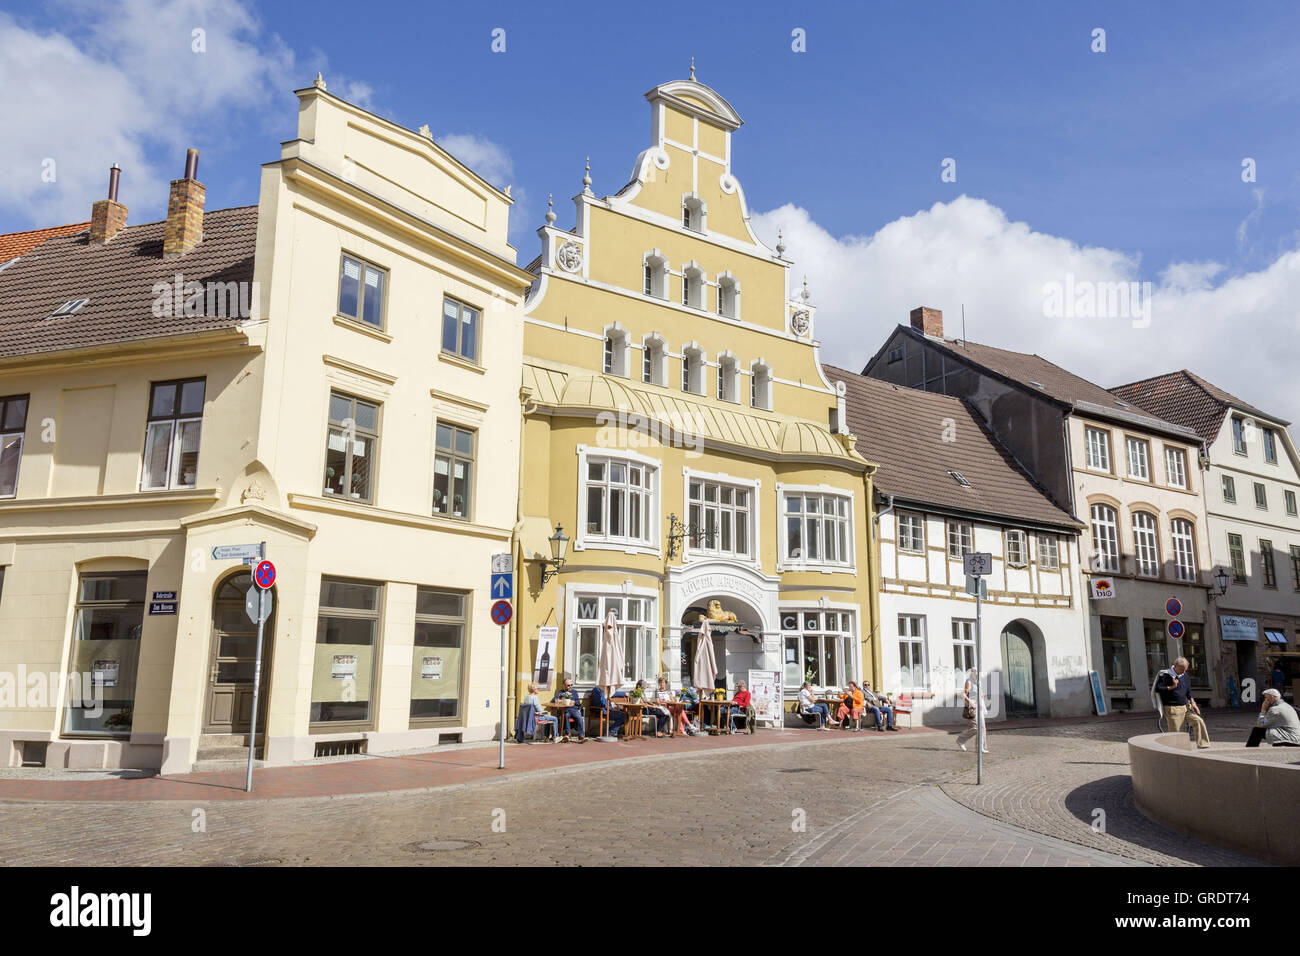 Café In Front Of A Yellow House In Wismar Mecklenburg-Vorpommern - Stock Image